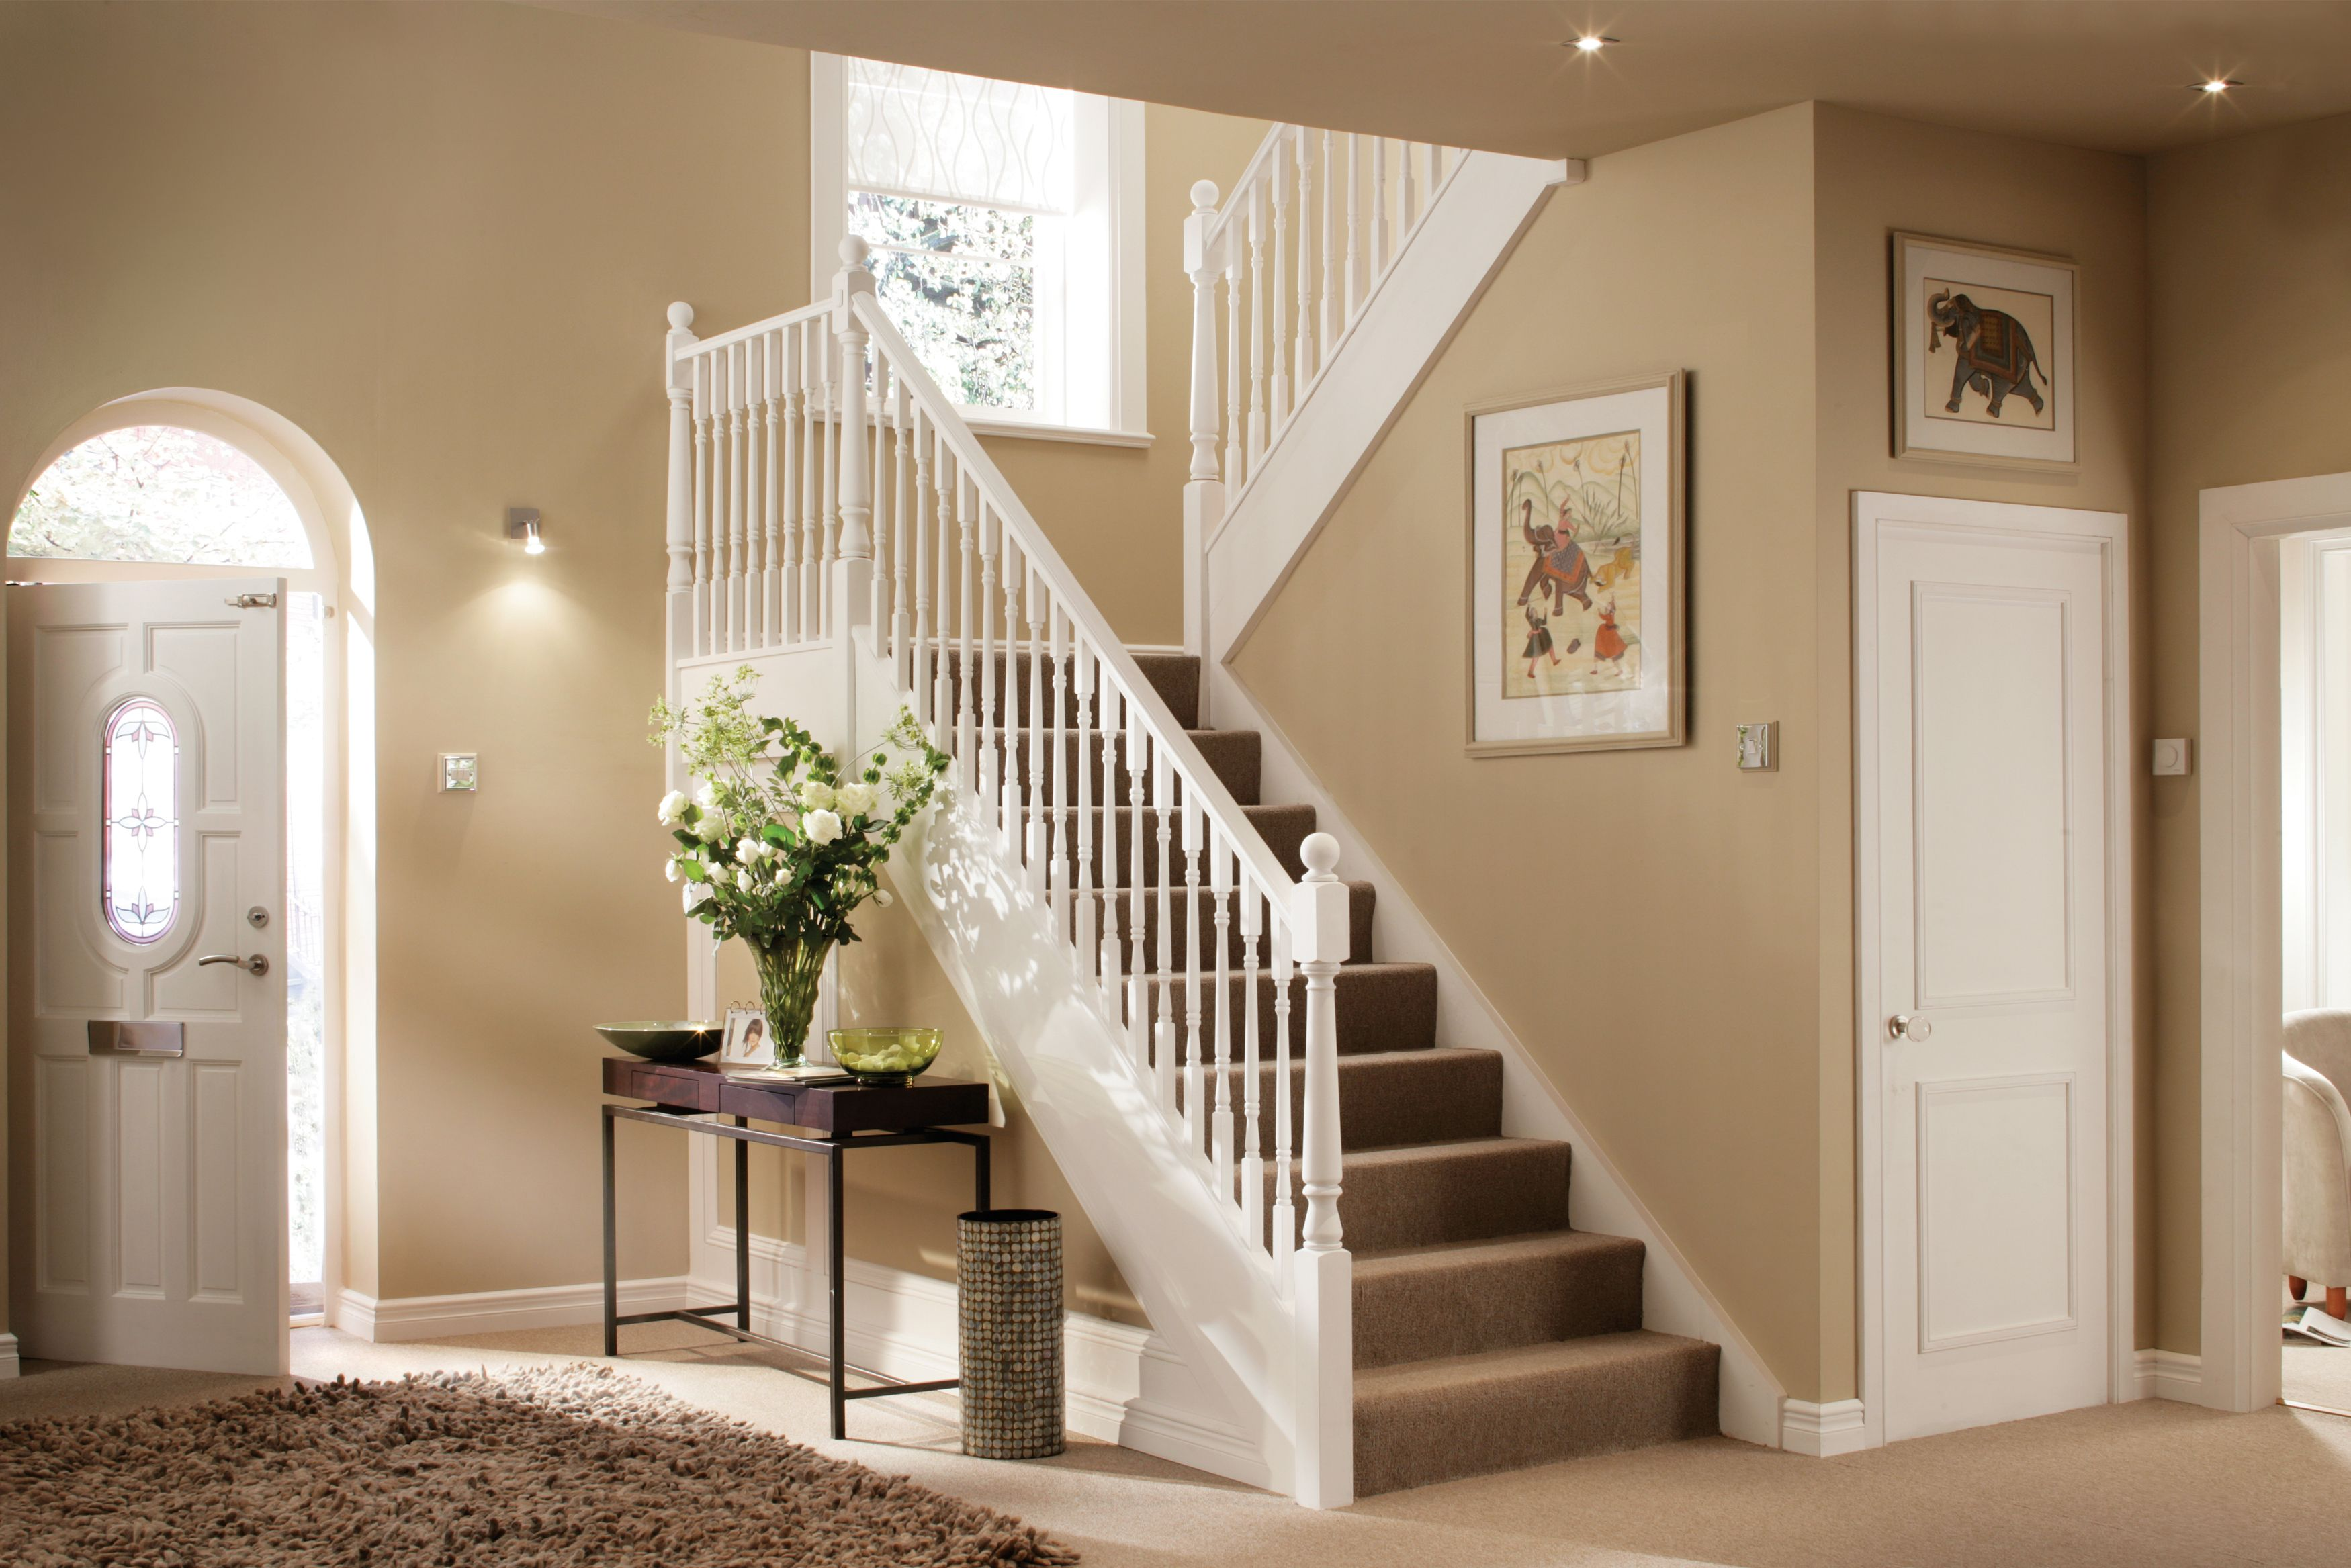 First impressions count bringing your hallway to life Hallway colour scheme ideas